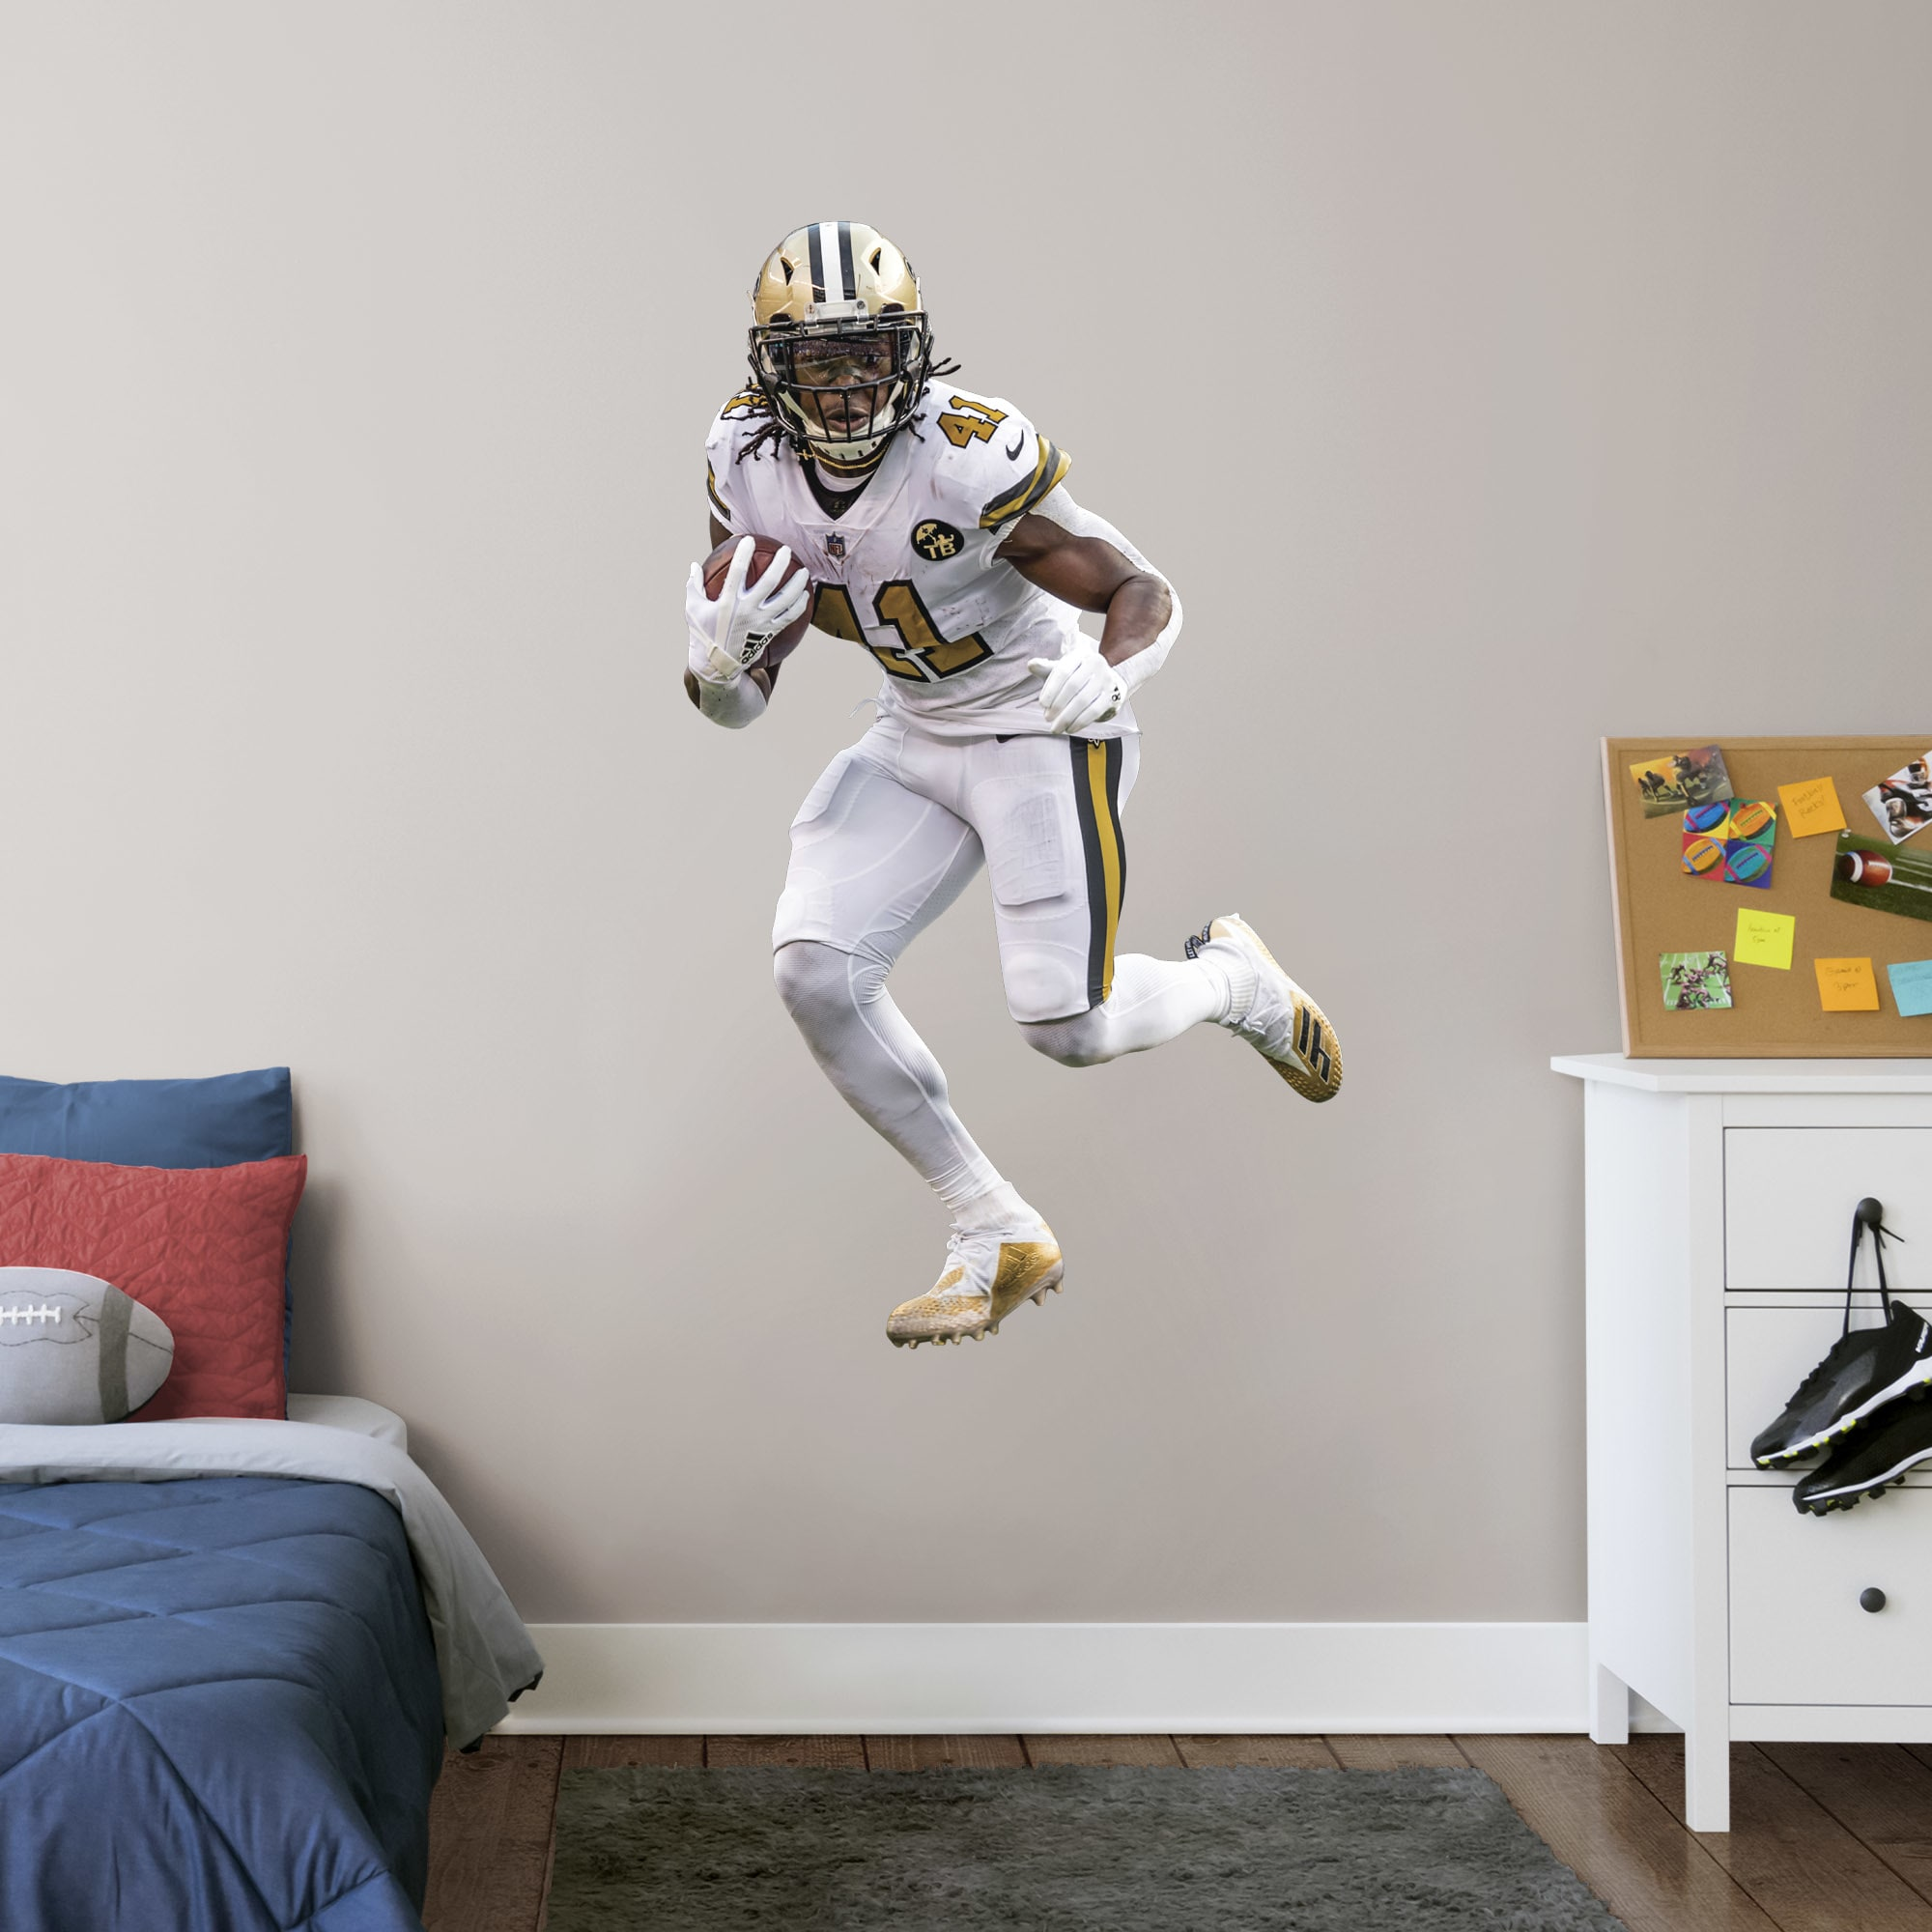 Fathead Alvin Kamara Color Rush Giant Officially Licensed Nfl Removable Wall Decal Walmart Com Walmart Com